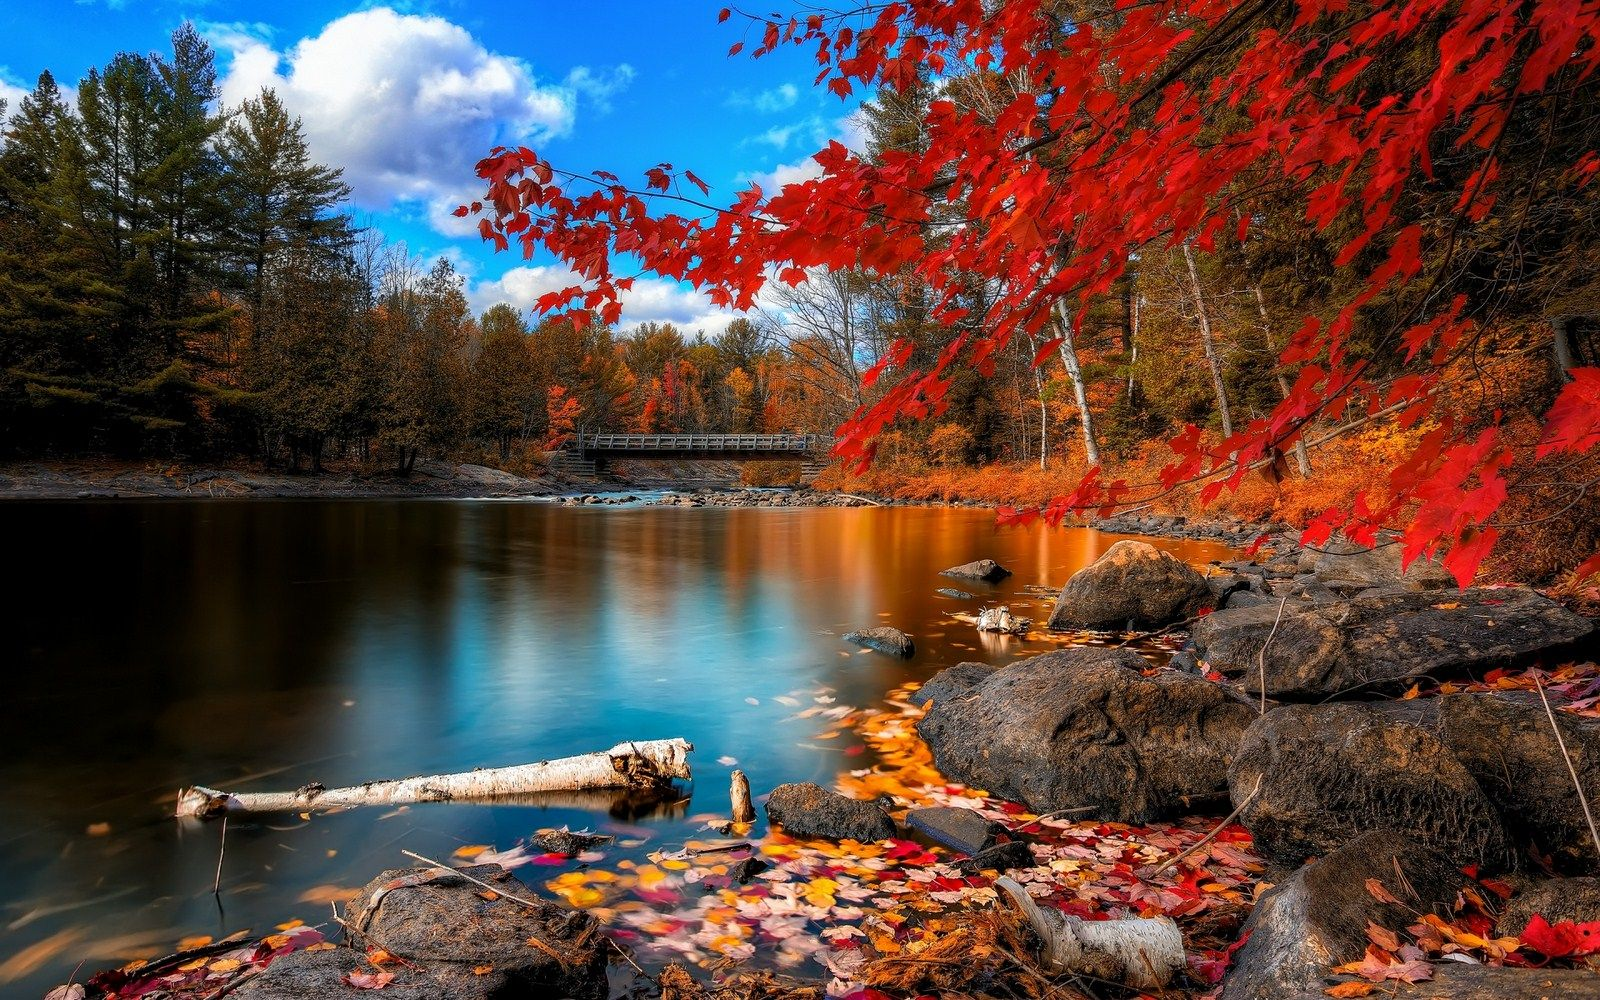 Fall Forest Beautiful Nature Scenery Wallpaper Scenery